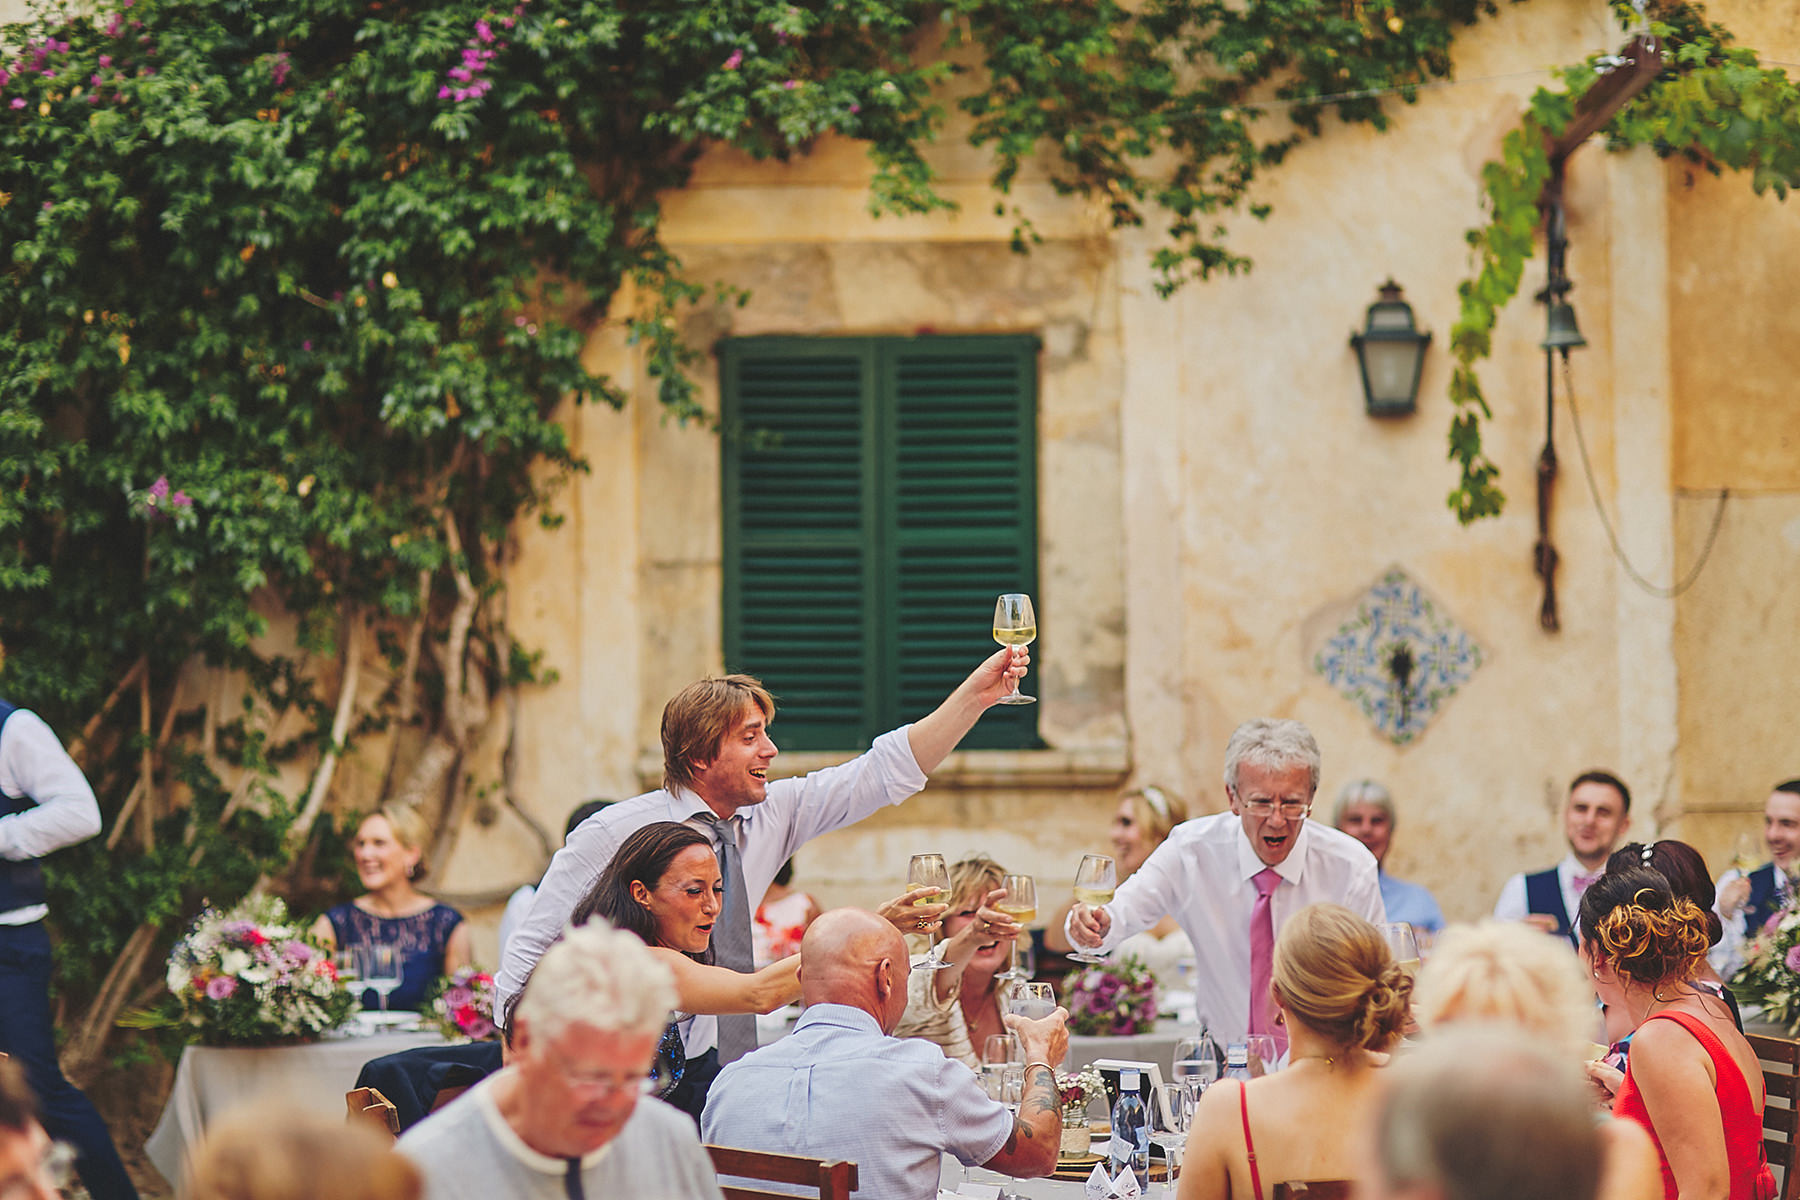 353 - Destination wedding in a magical Mallorca